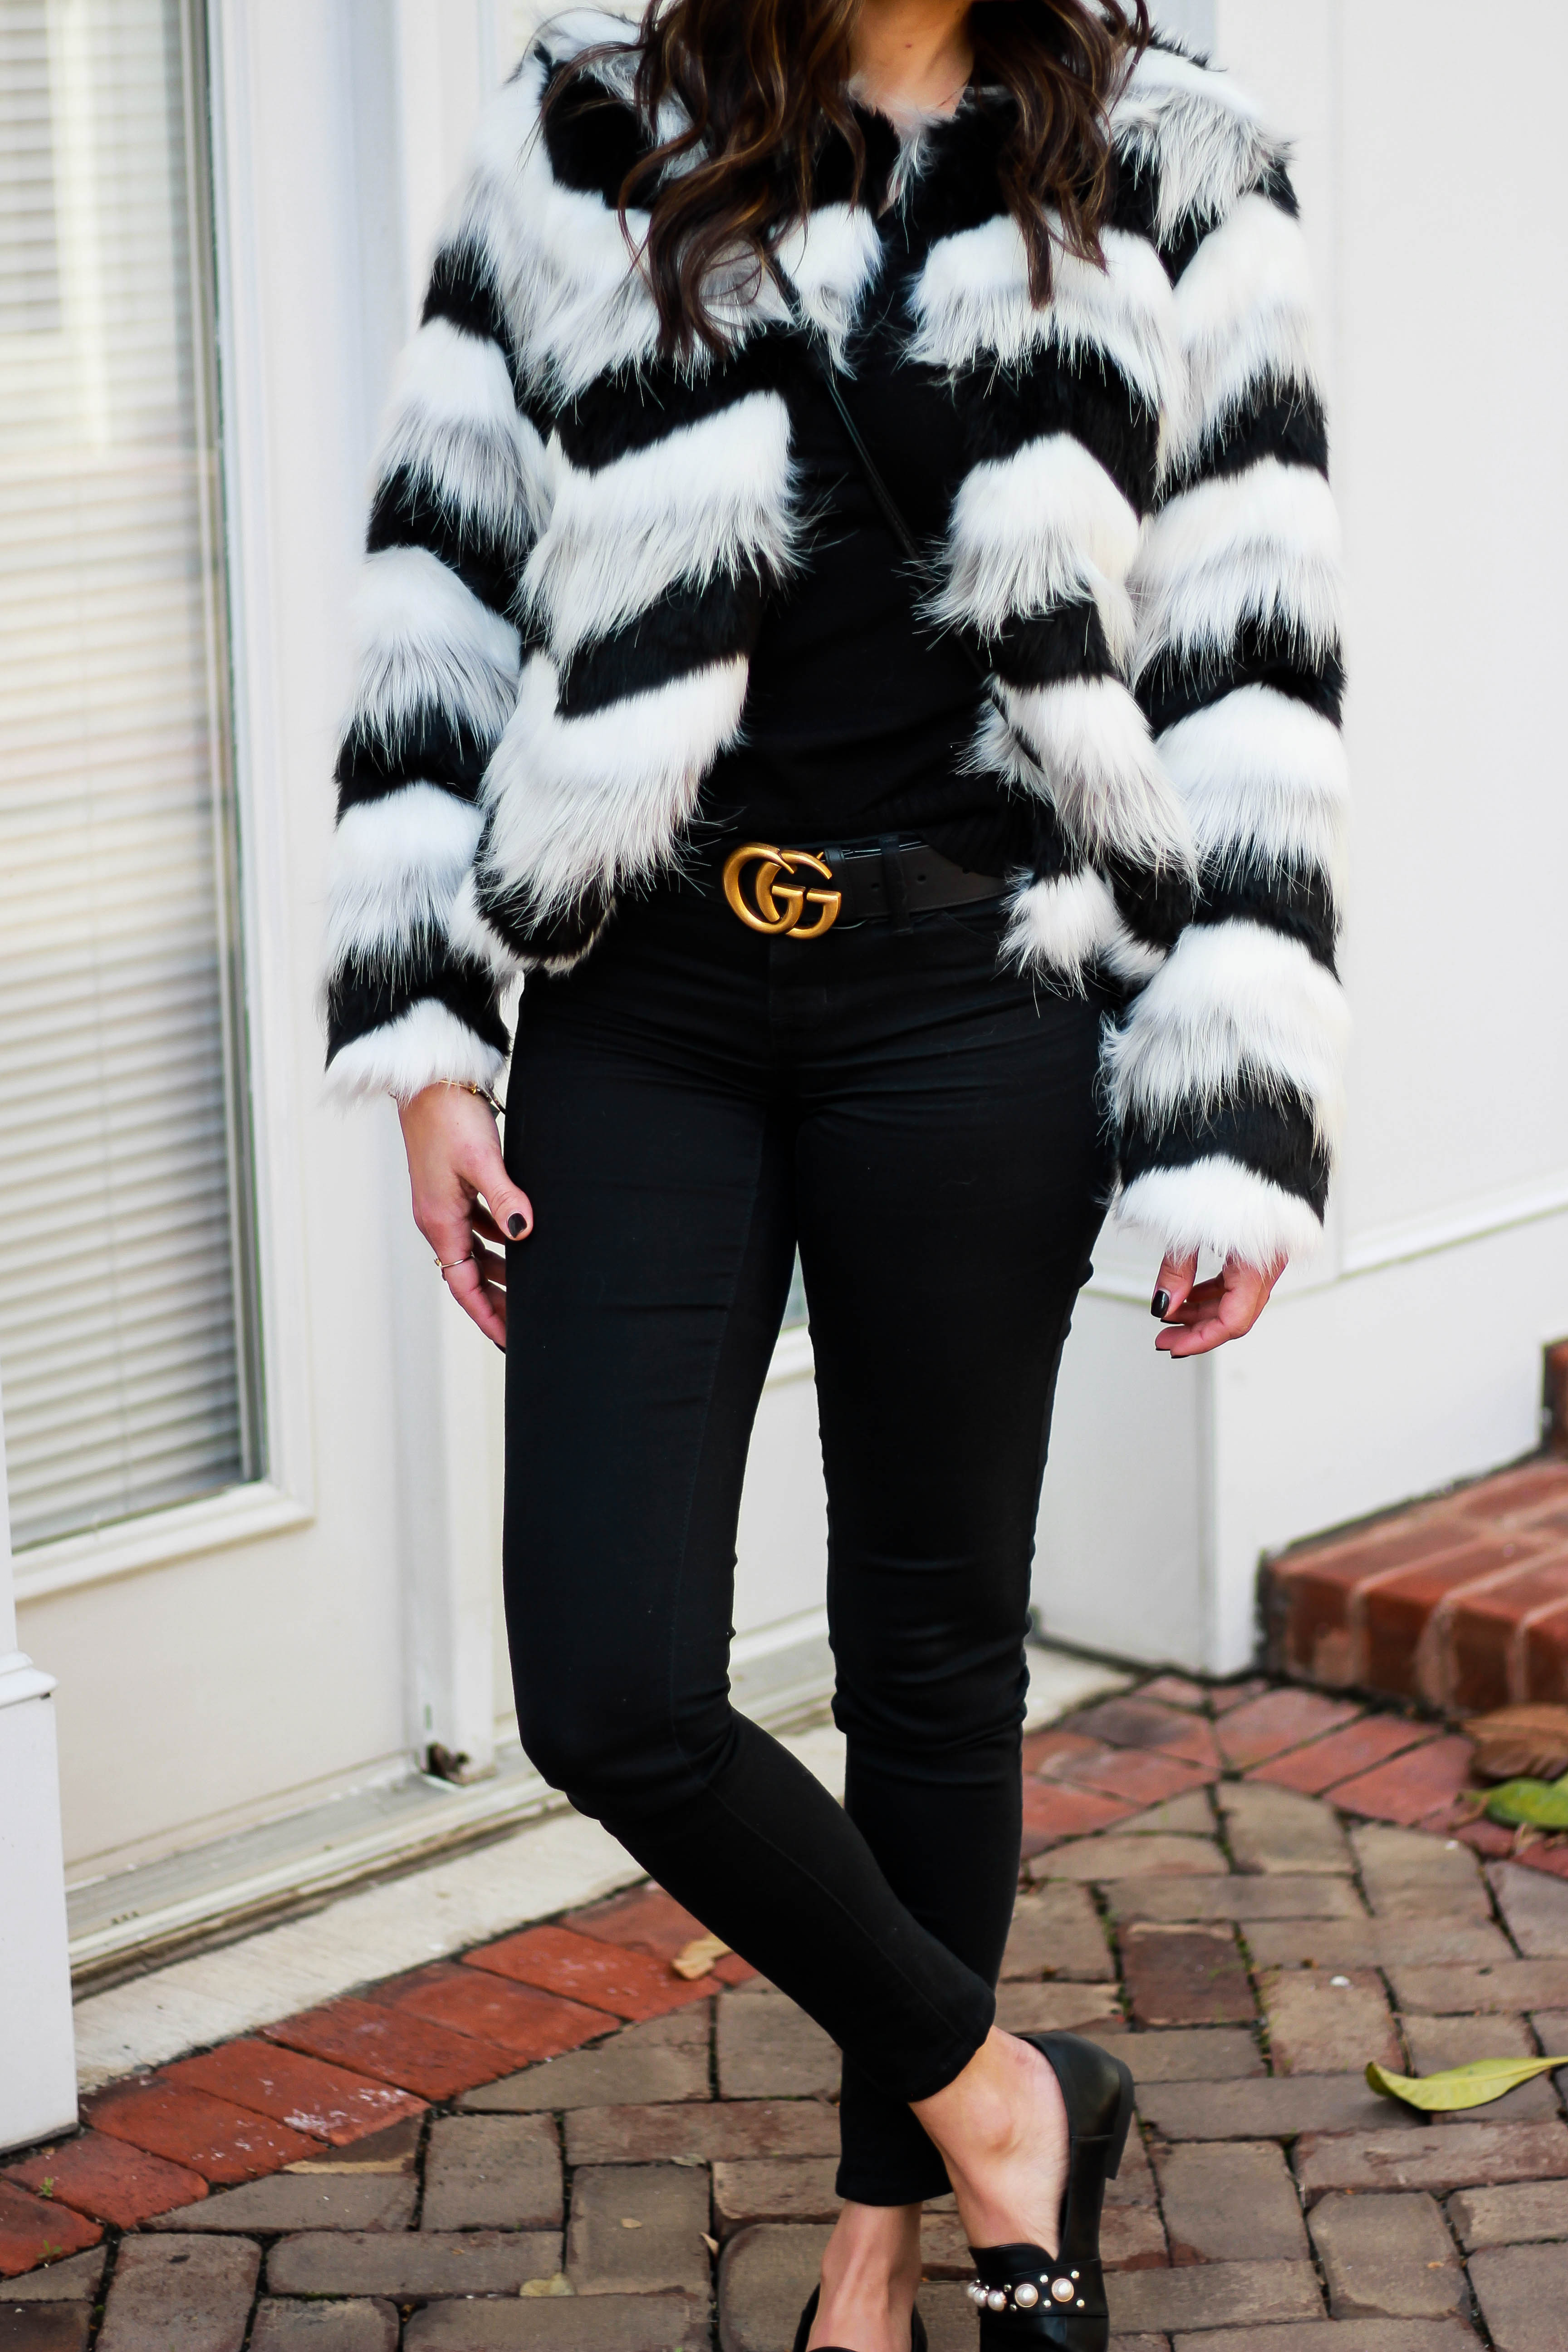 Fur Coat Conductor Hat Pearl Loafers